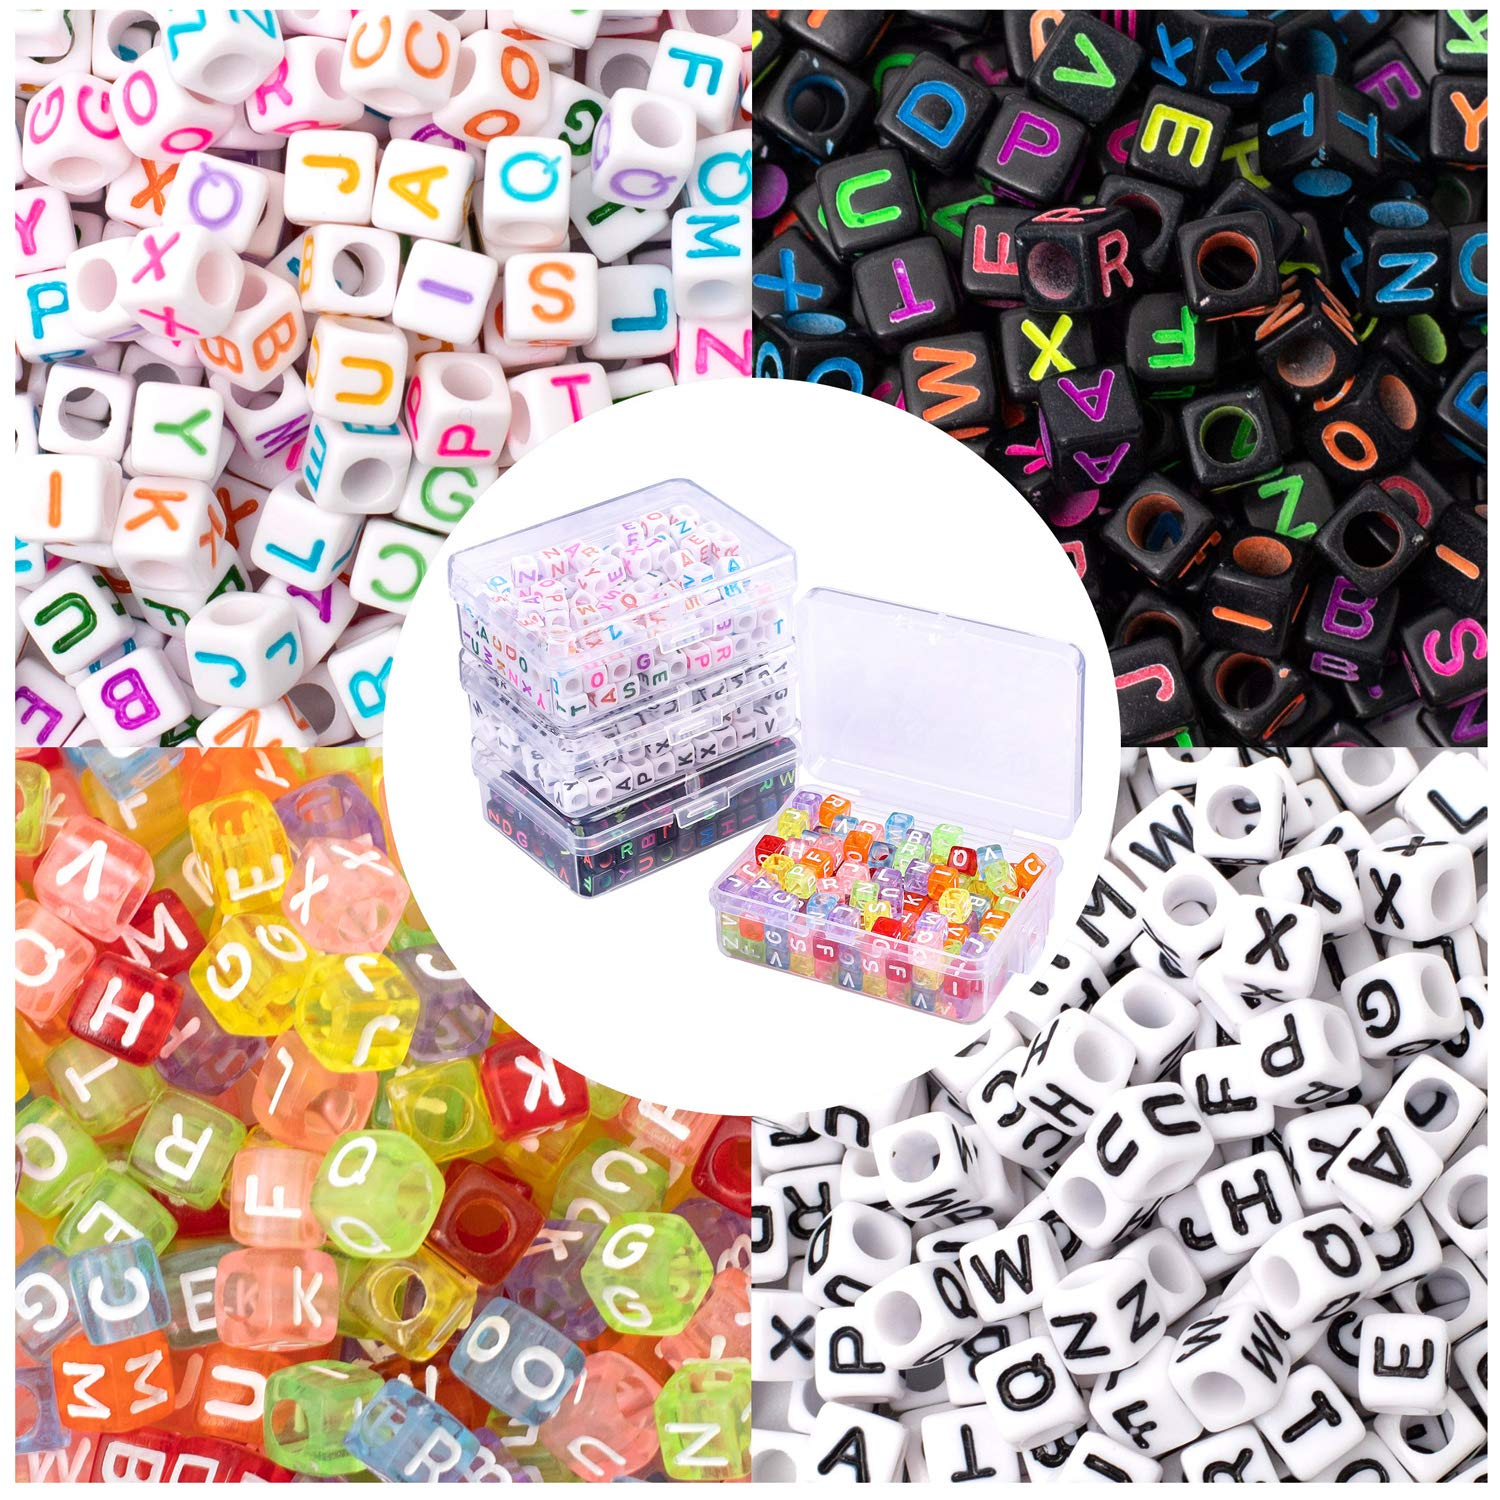 Whaline 800 Pieces 4 Colors Acrylic Alphabet Letter Beads in 4 Storage Case with 16 Feet Crystal Thread for Kids DIY Jewelry Making Key Chains (6 mm)